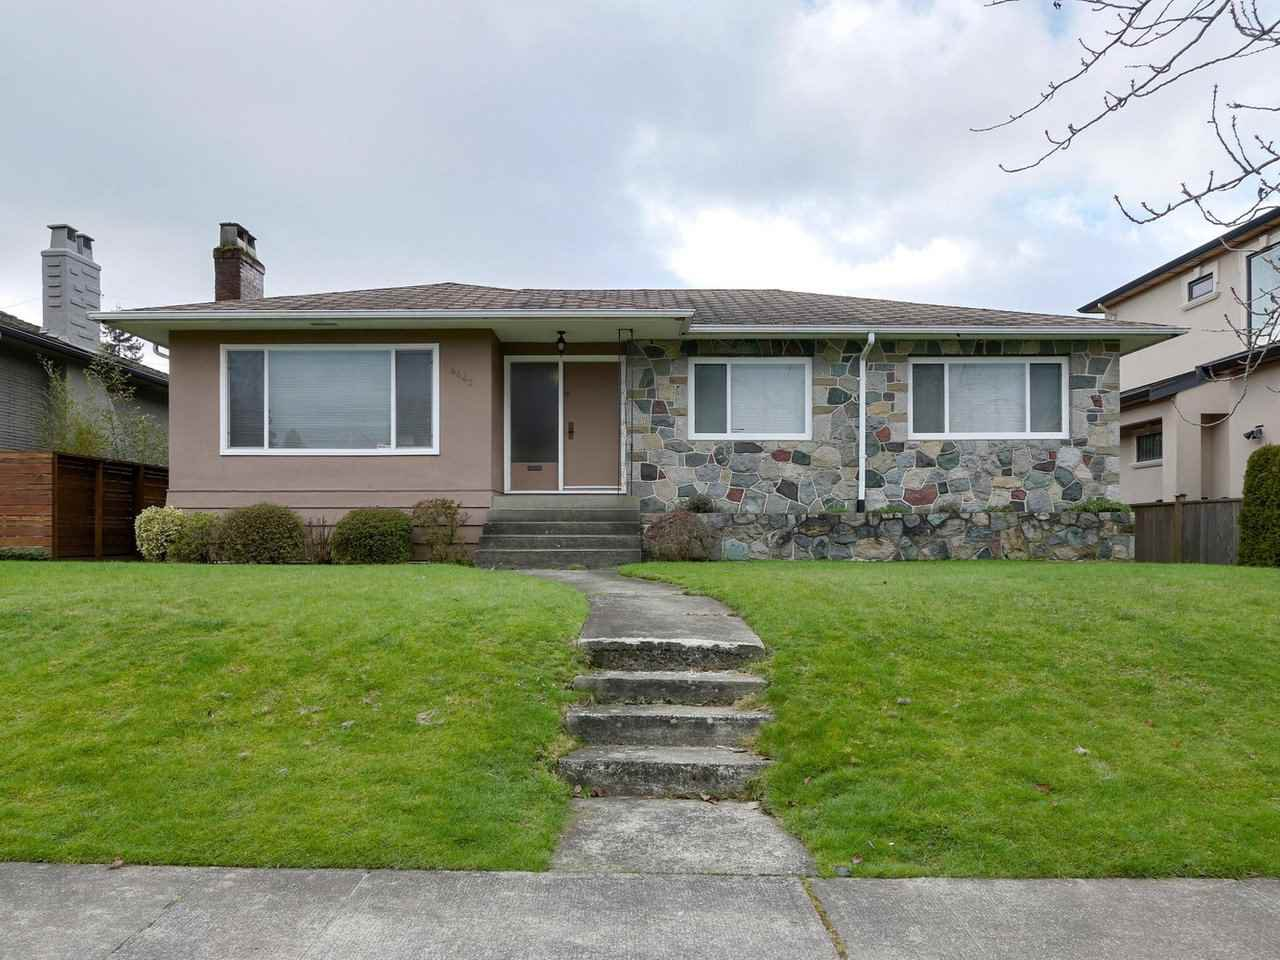 Main Photo: 4443 BRAKENRIDGE STREET in Vancouver: Quilchena House for sale (Vancouver West)  : MLS®# R2436492